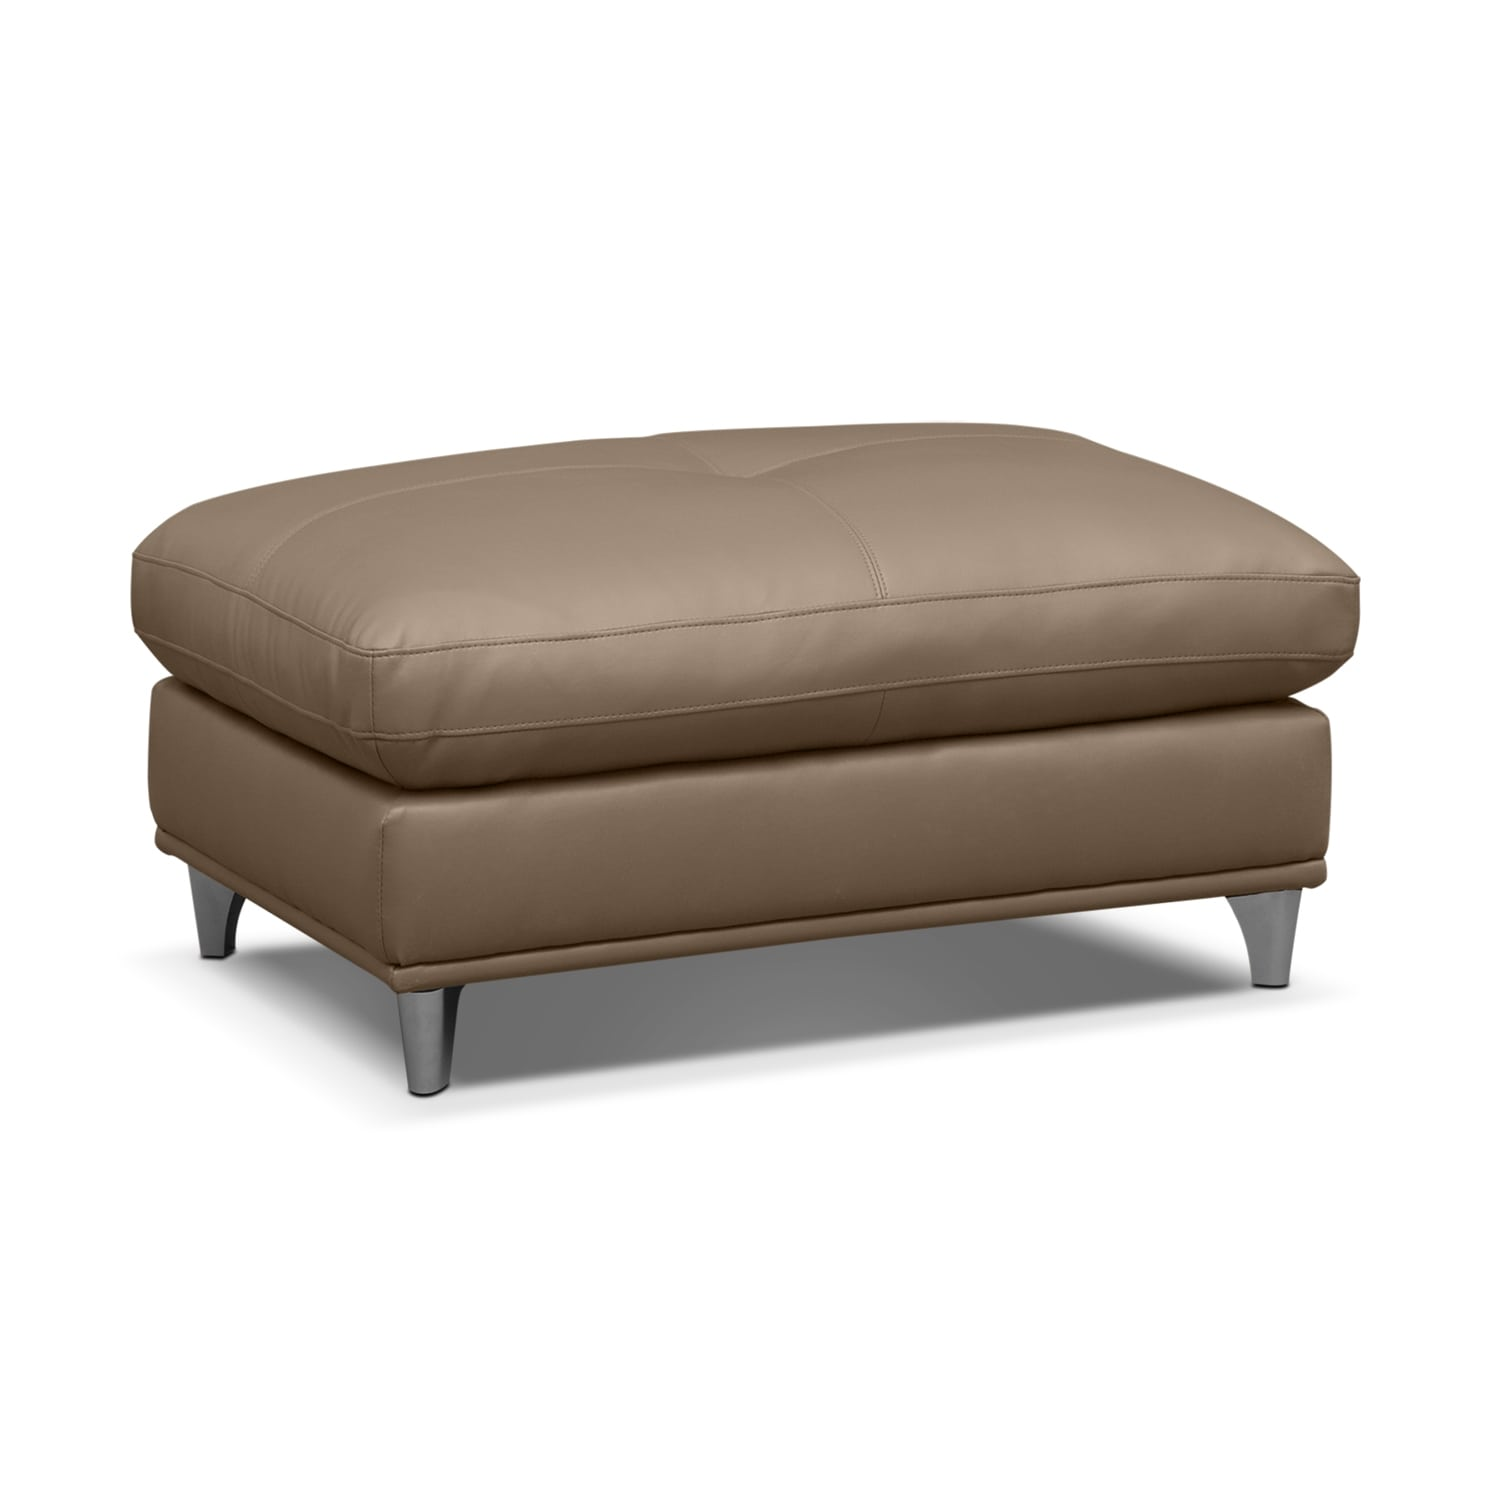 Mystique leather cocktail ottoman value city furniture for Living room ottoman